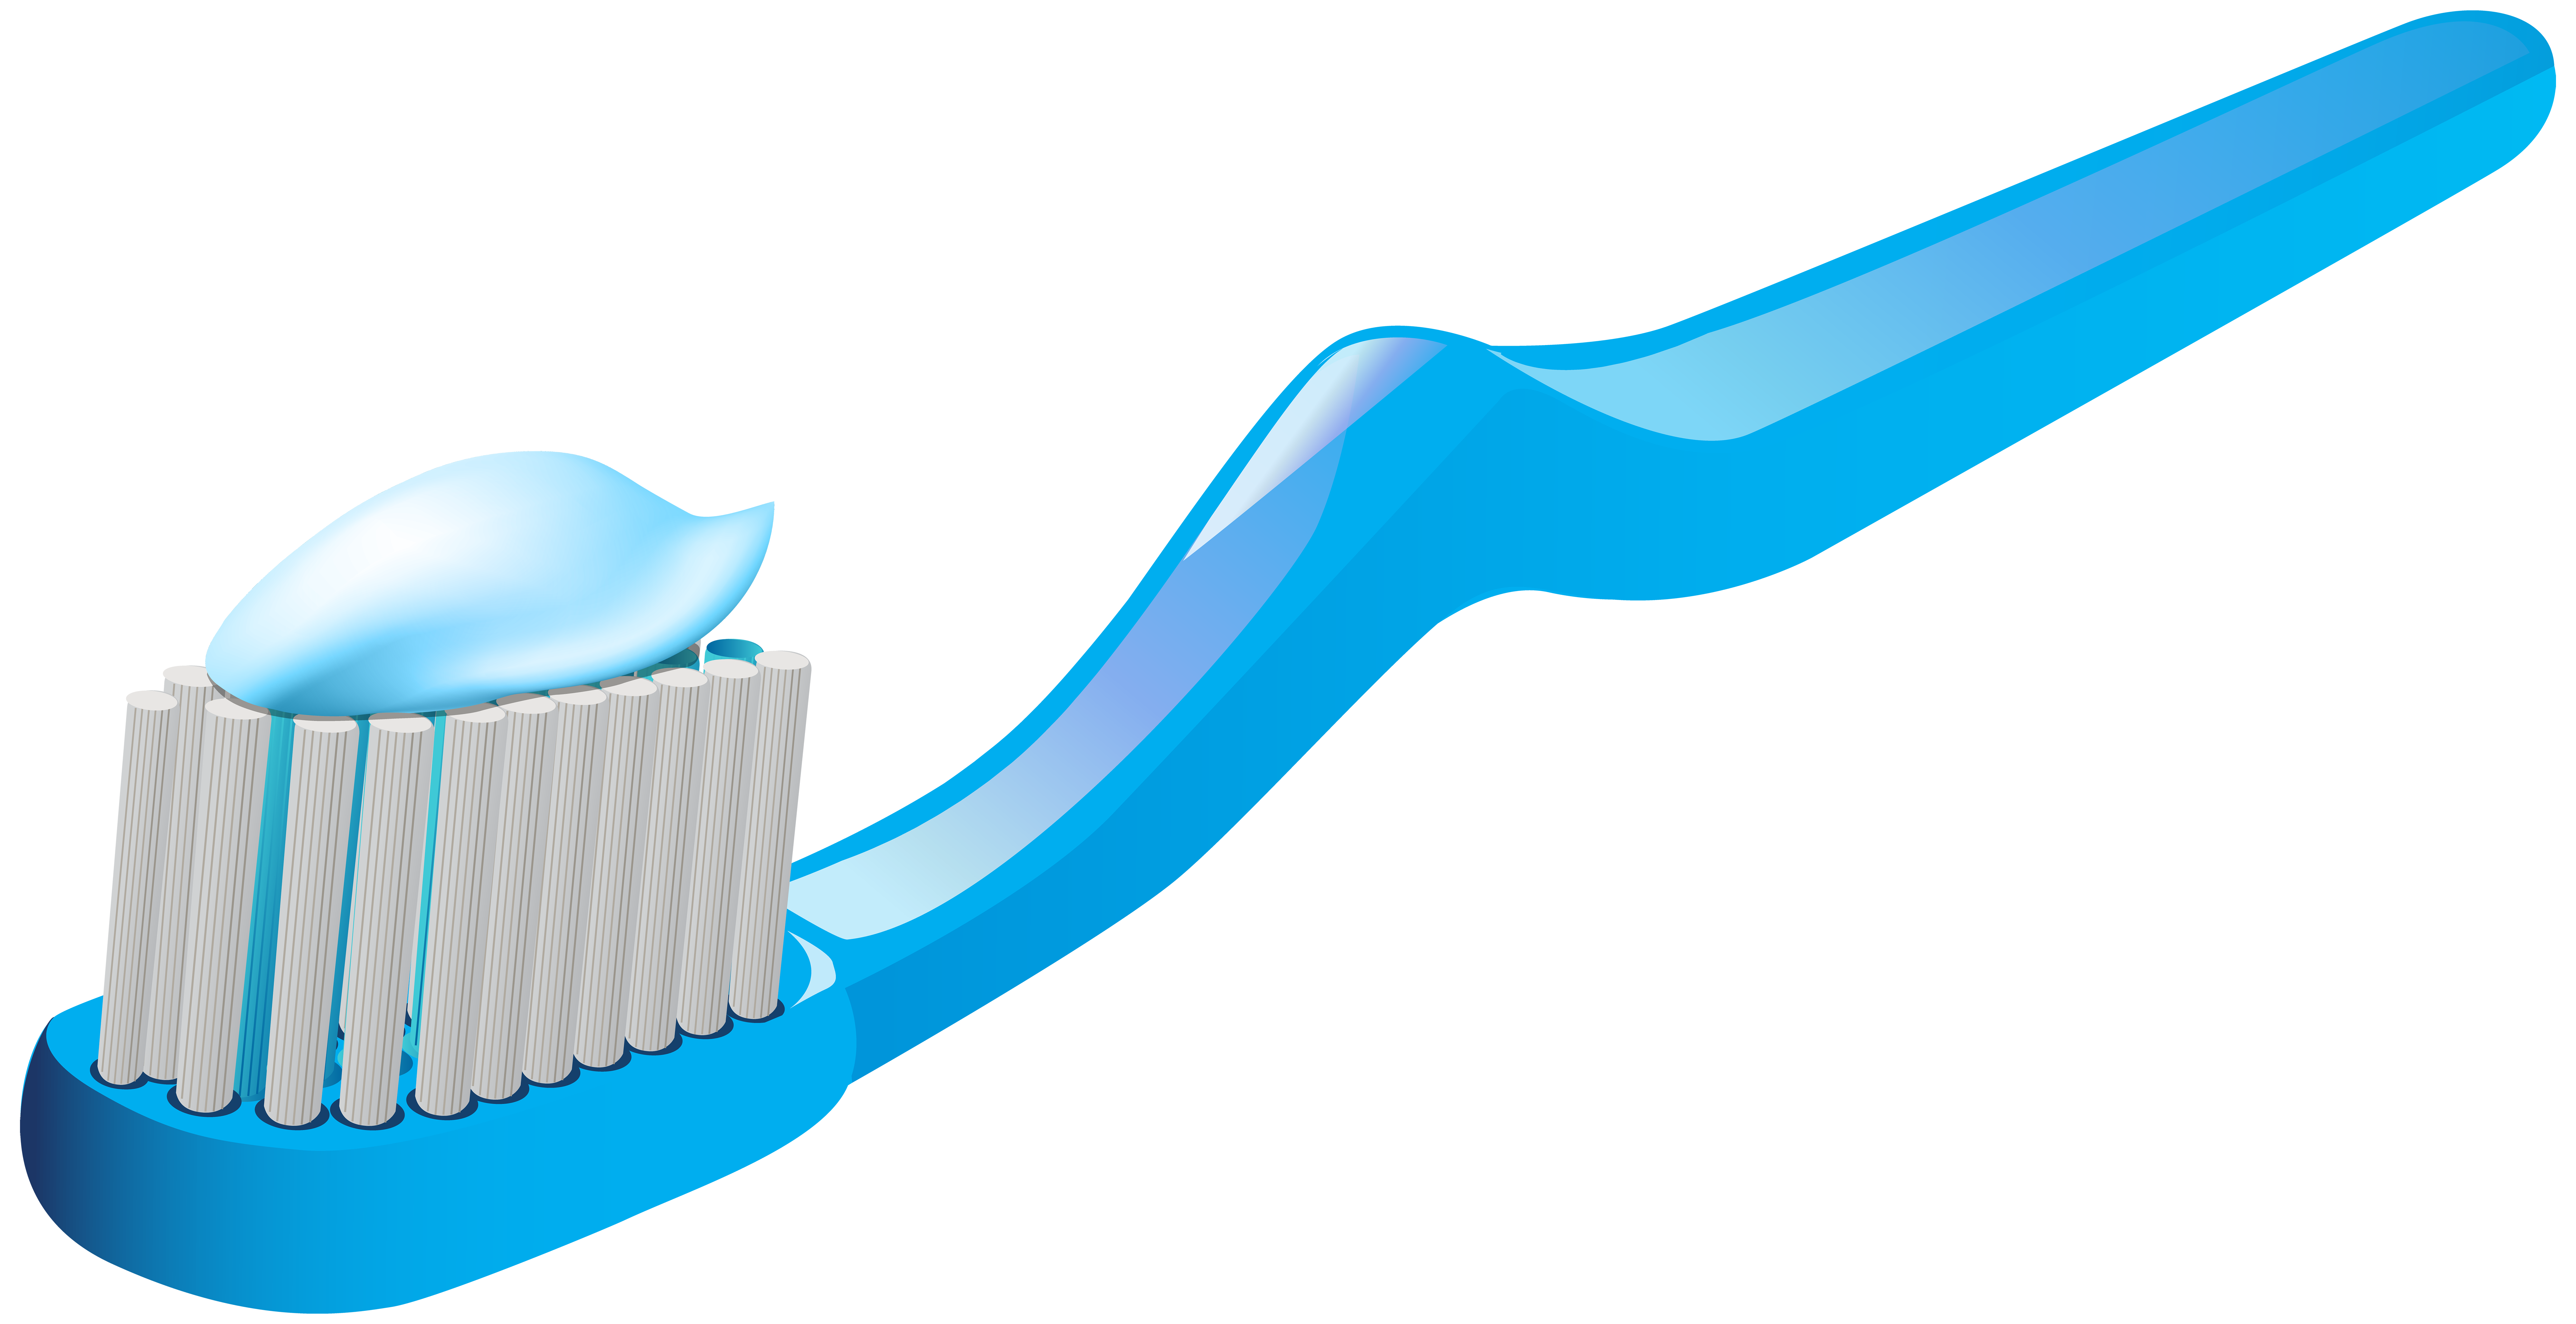 Toothbrush clipart simple #8